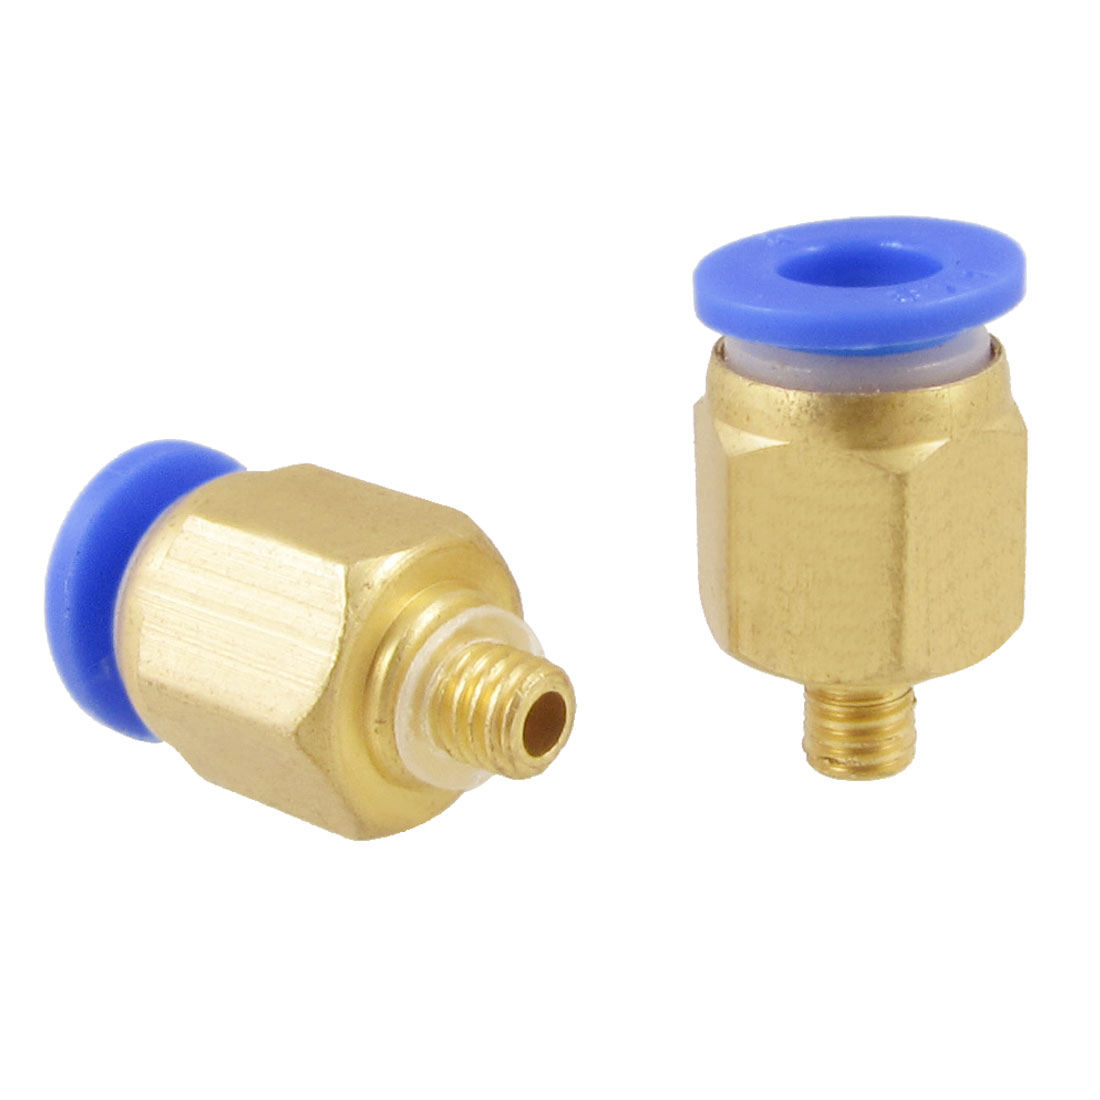 5mm Male Thread 6mm Connector Dia One Touch Tube Push in Quick Fittings 2 Pcs